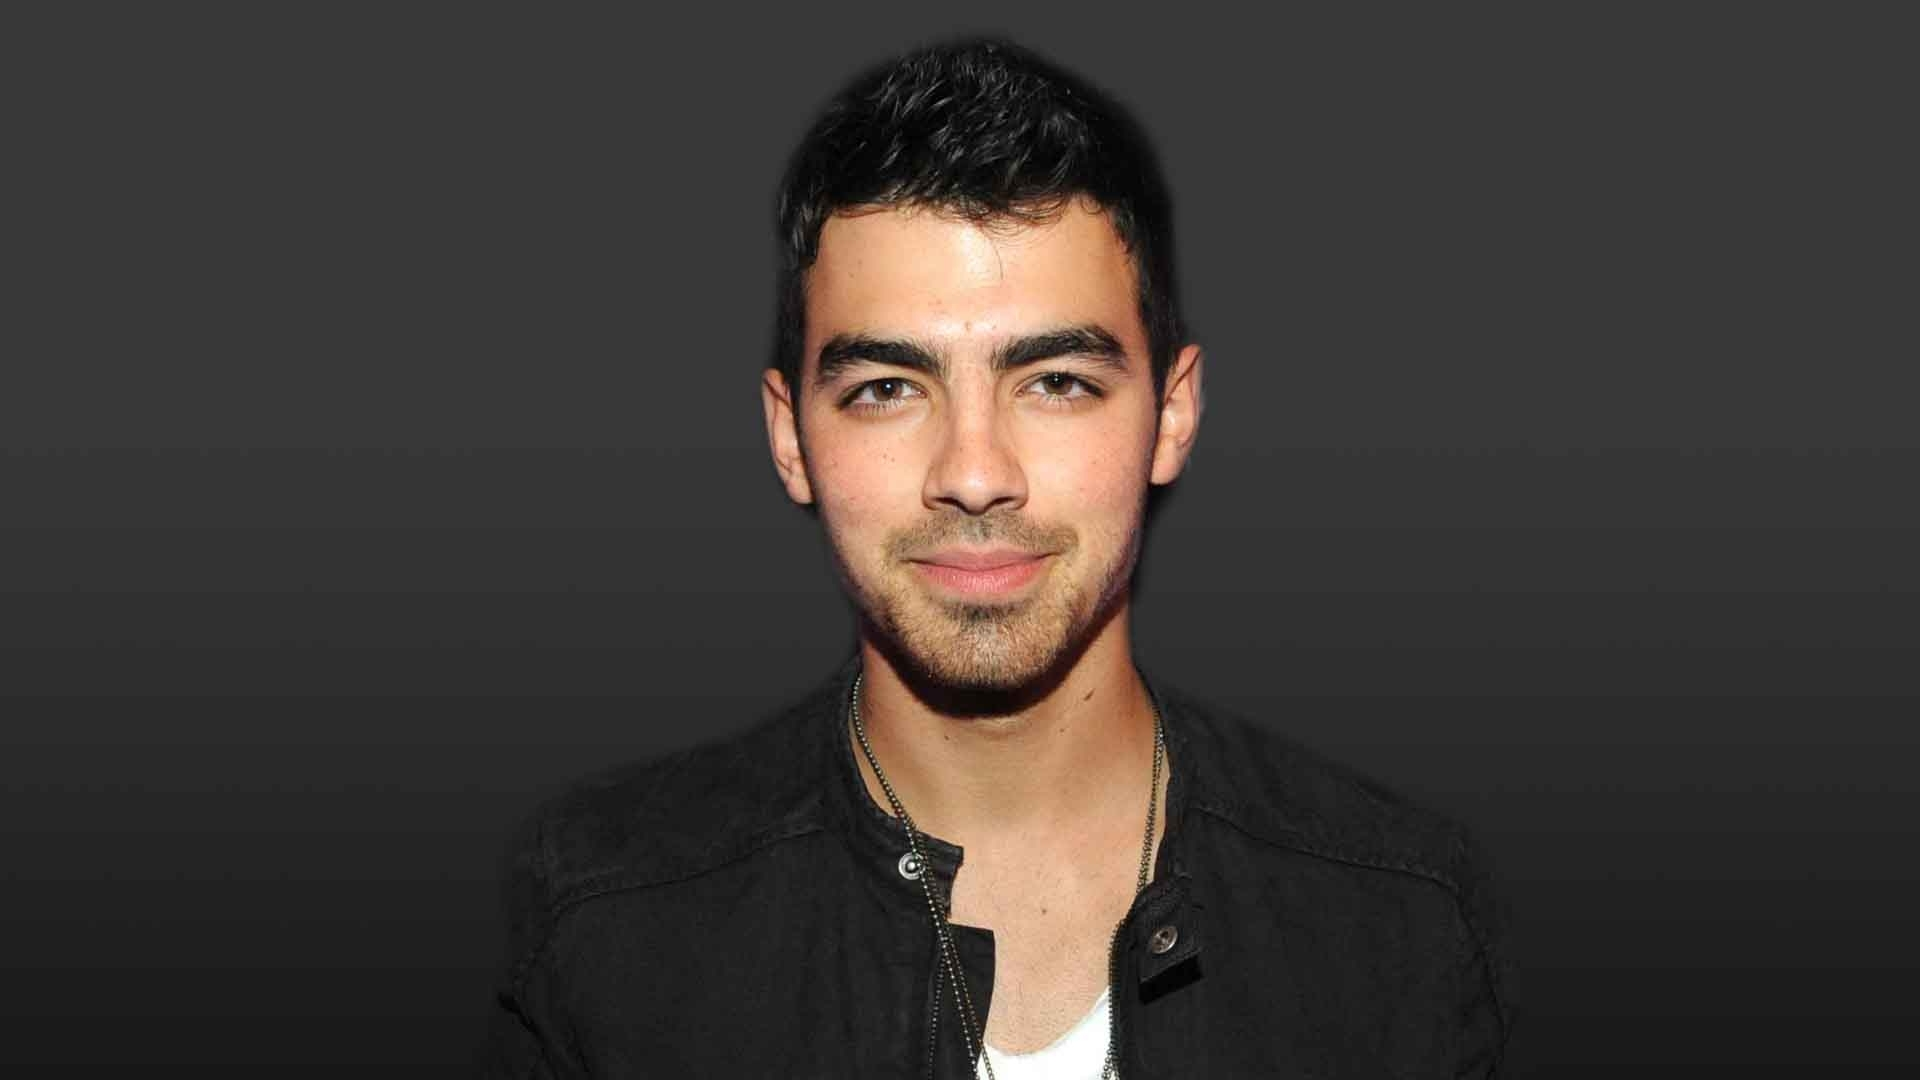 Joe Jonas Wallpaper For Computer